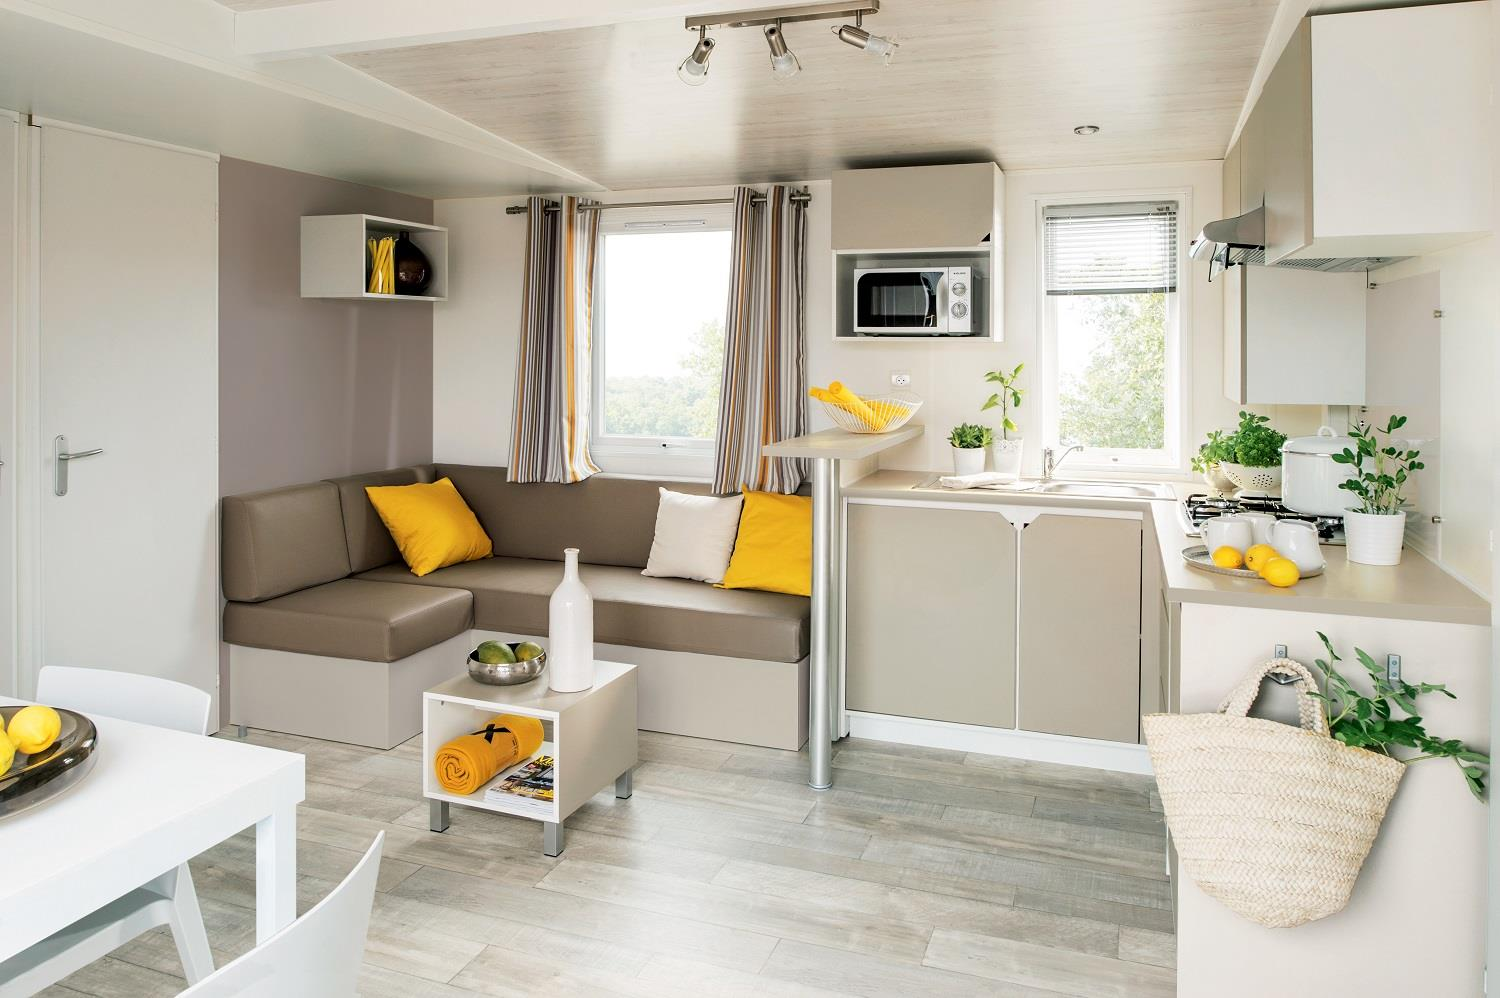 Locatifs - Le Grand Charme (6 Pers) Tv + Climatise / Animaux Interdits - Camping Le Bon Port